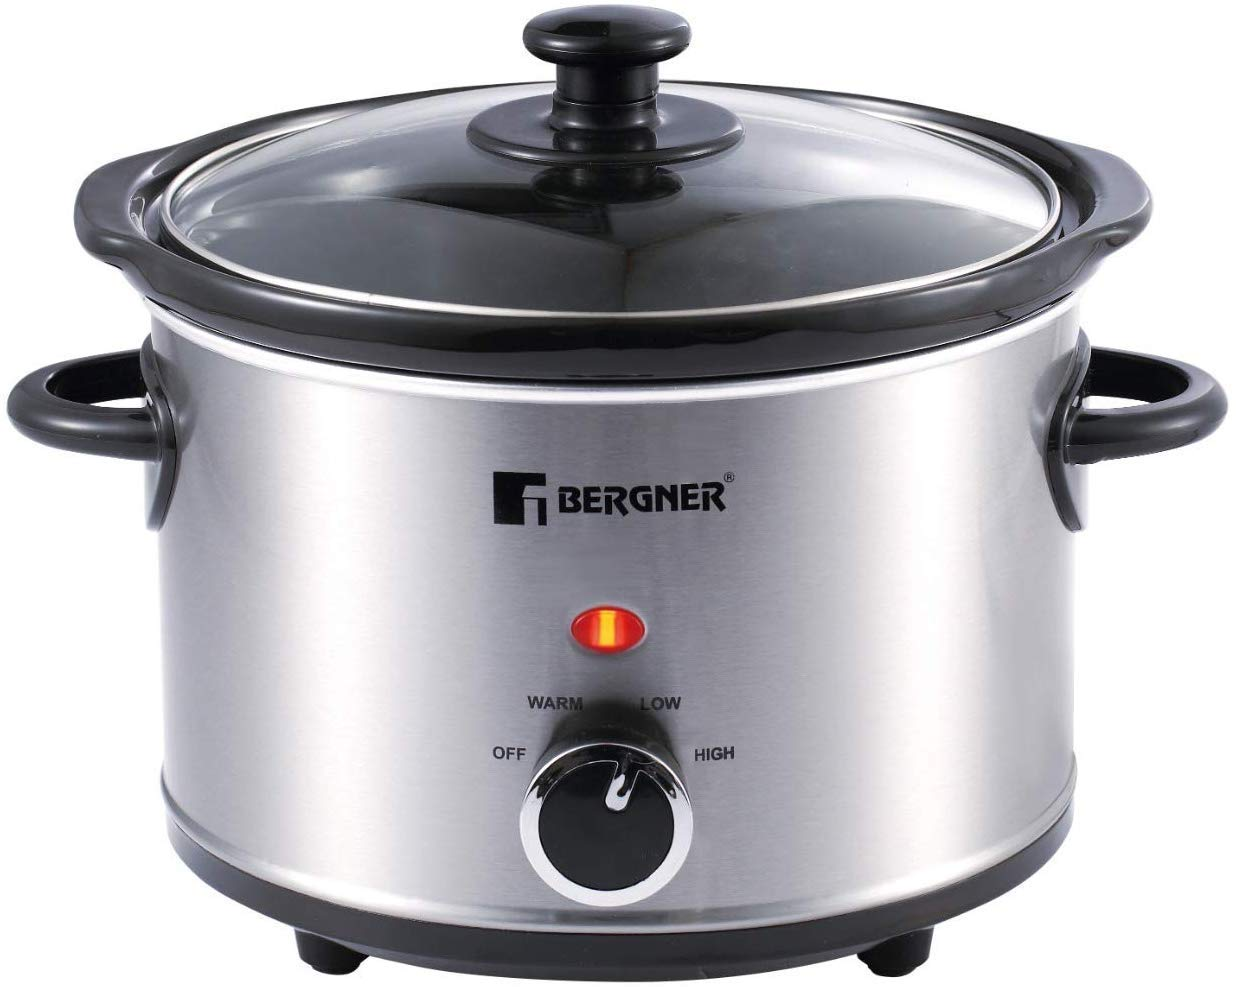 Bergner Elite Stainless Steel Slow Cooker